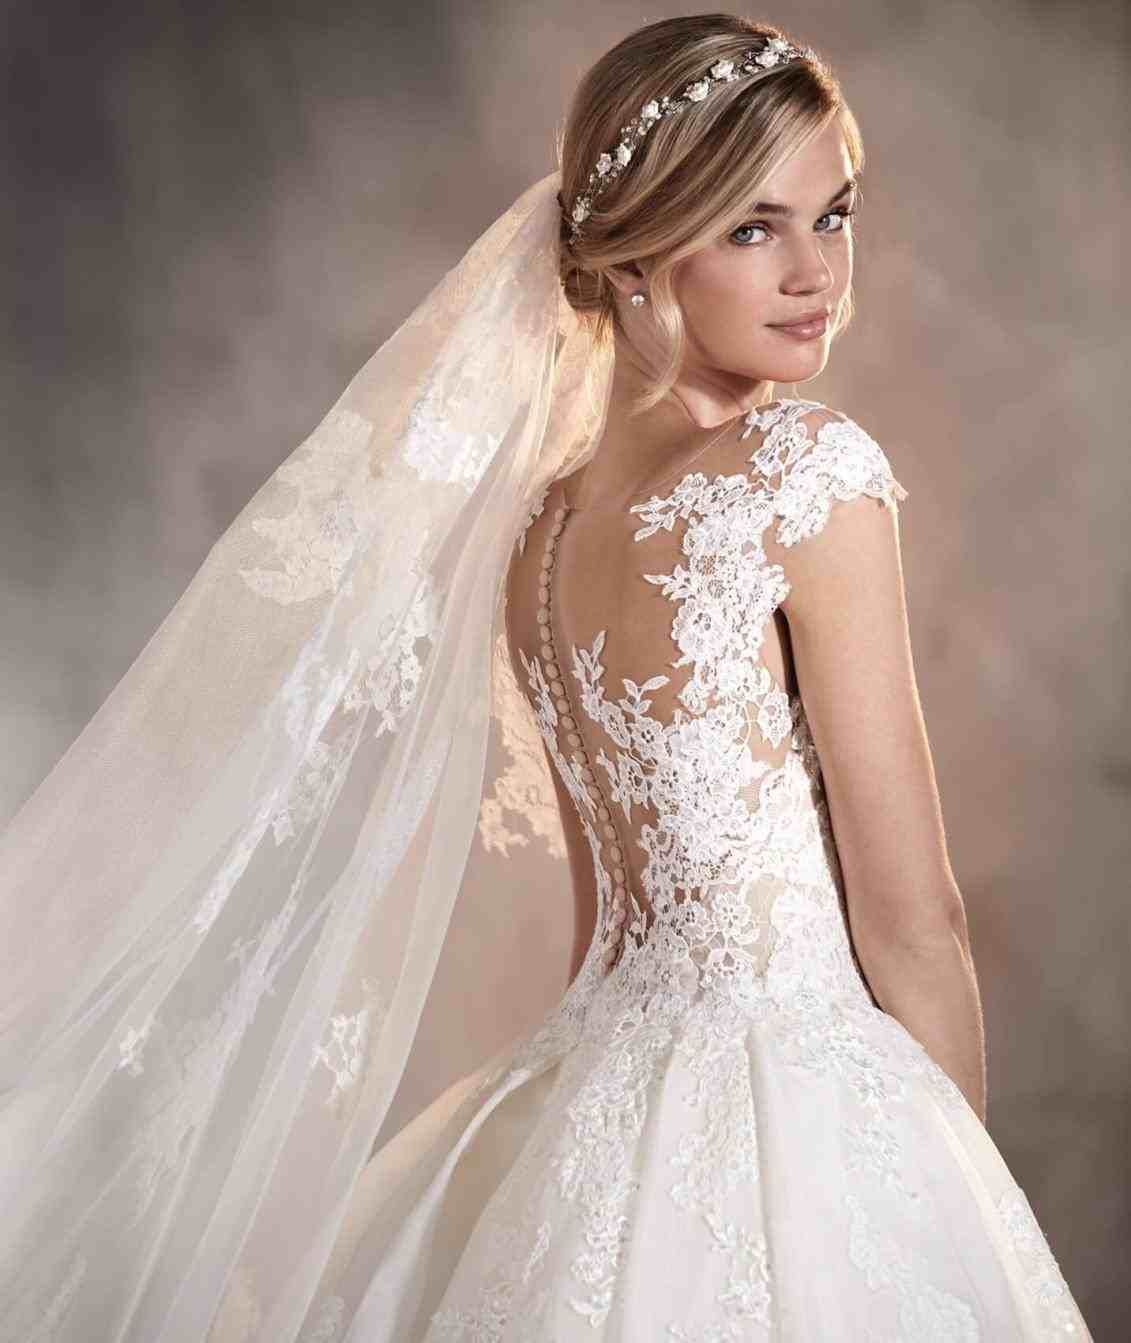 Suggested Sites Hint Wedbridal Site Clean Commerce Immediately This Instant Used Online Online Store Very Cheap Quality Online Sales Pronovias Wedding Dress Wedding Dresses Wedding Dress Necklines